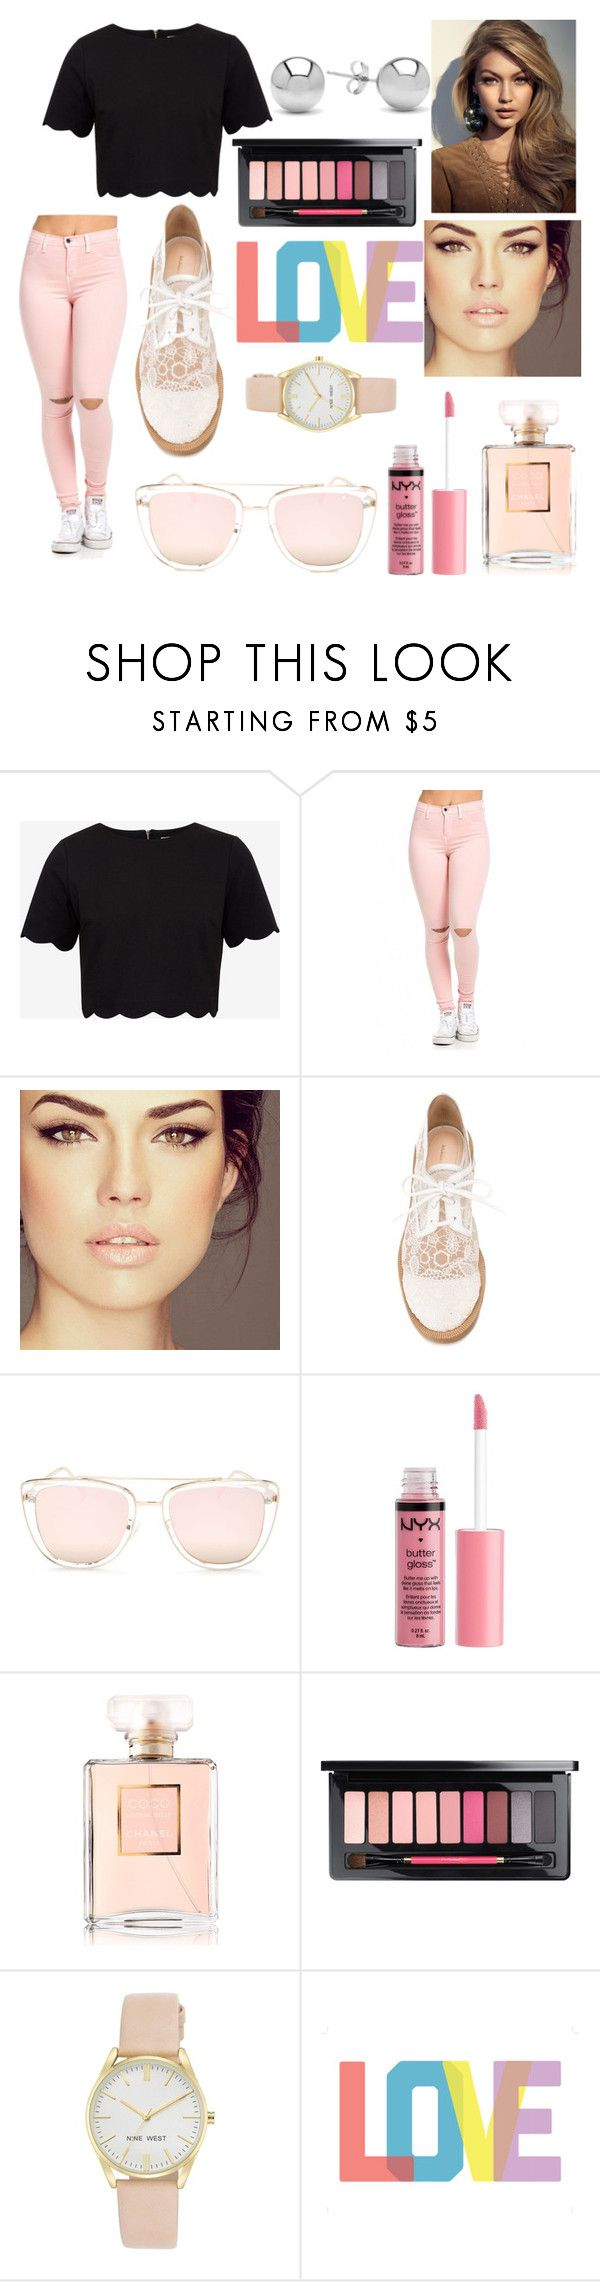 """Aphrodite cabin"" by liljmac ❤ liked on Polyvore featuring Ted Baker, Nicholas Kirkwood, Quay, Charlotte Russe, Chanel, Nine West and Jewelonfire"